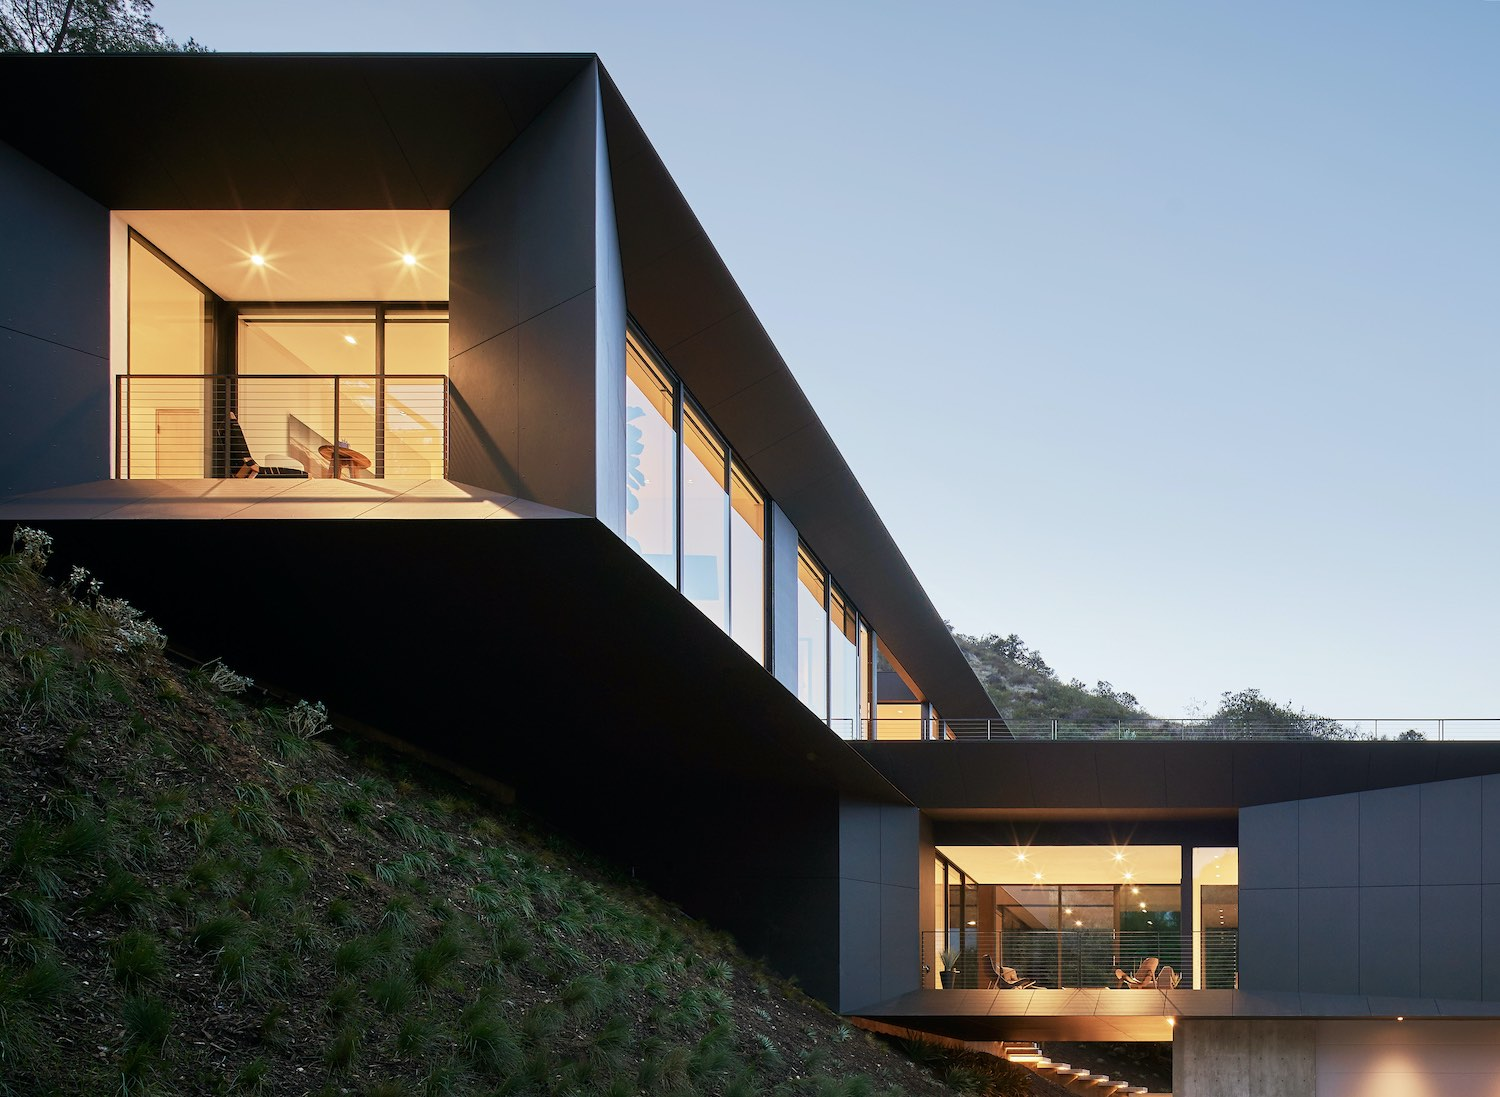 house with black metallic facade build on a hill